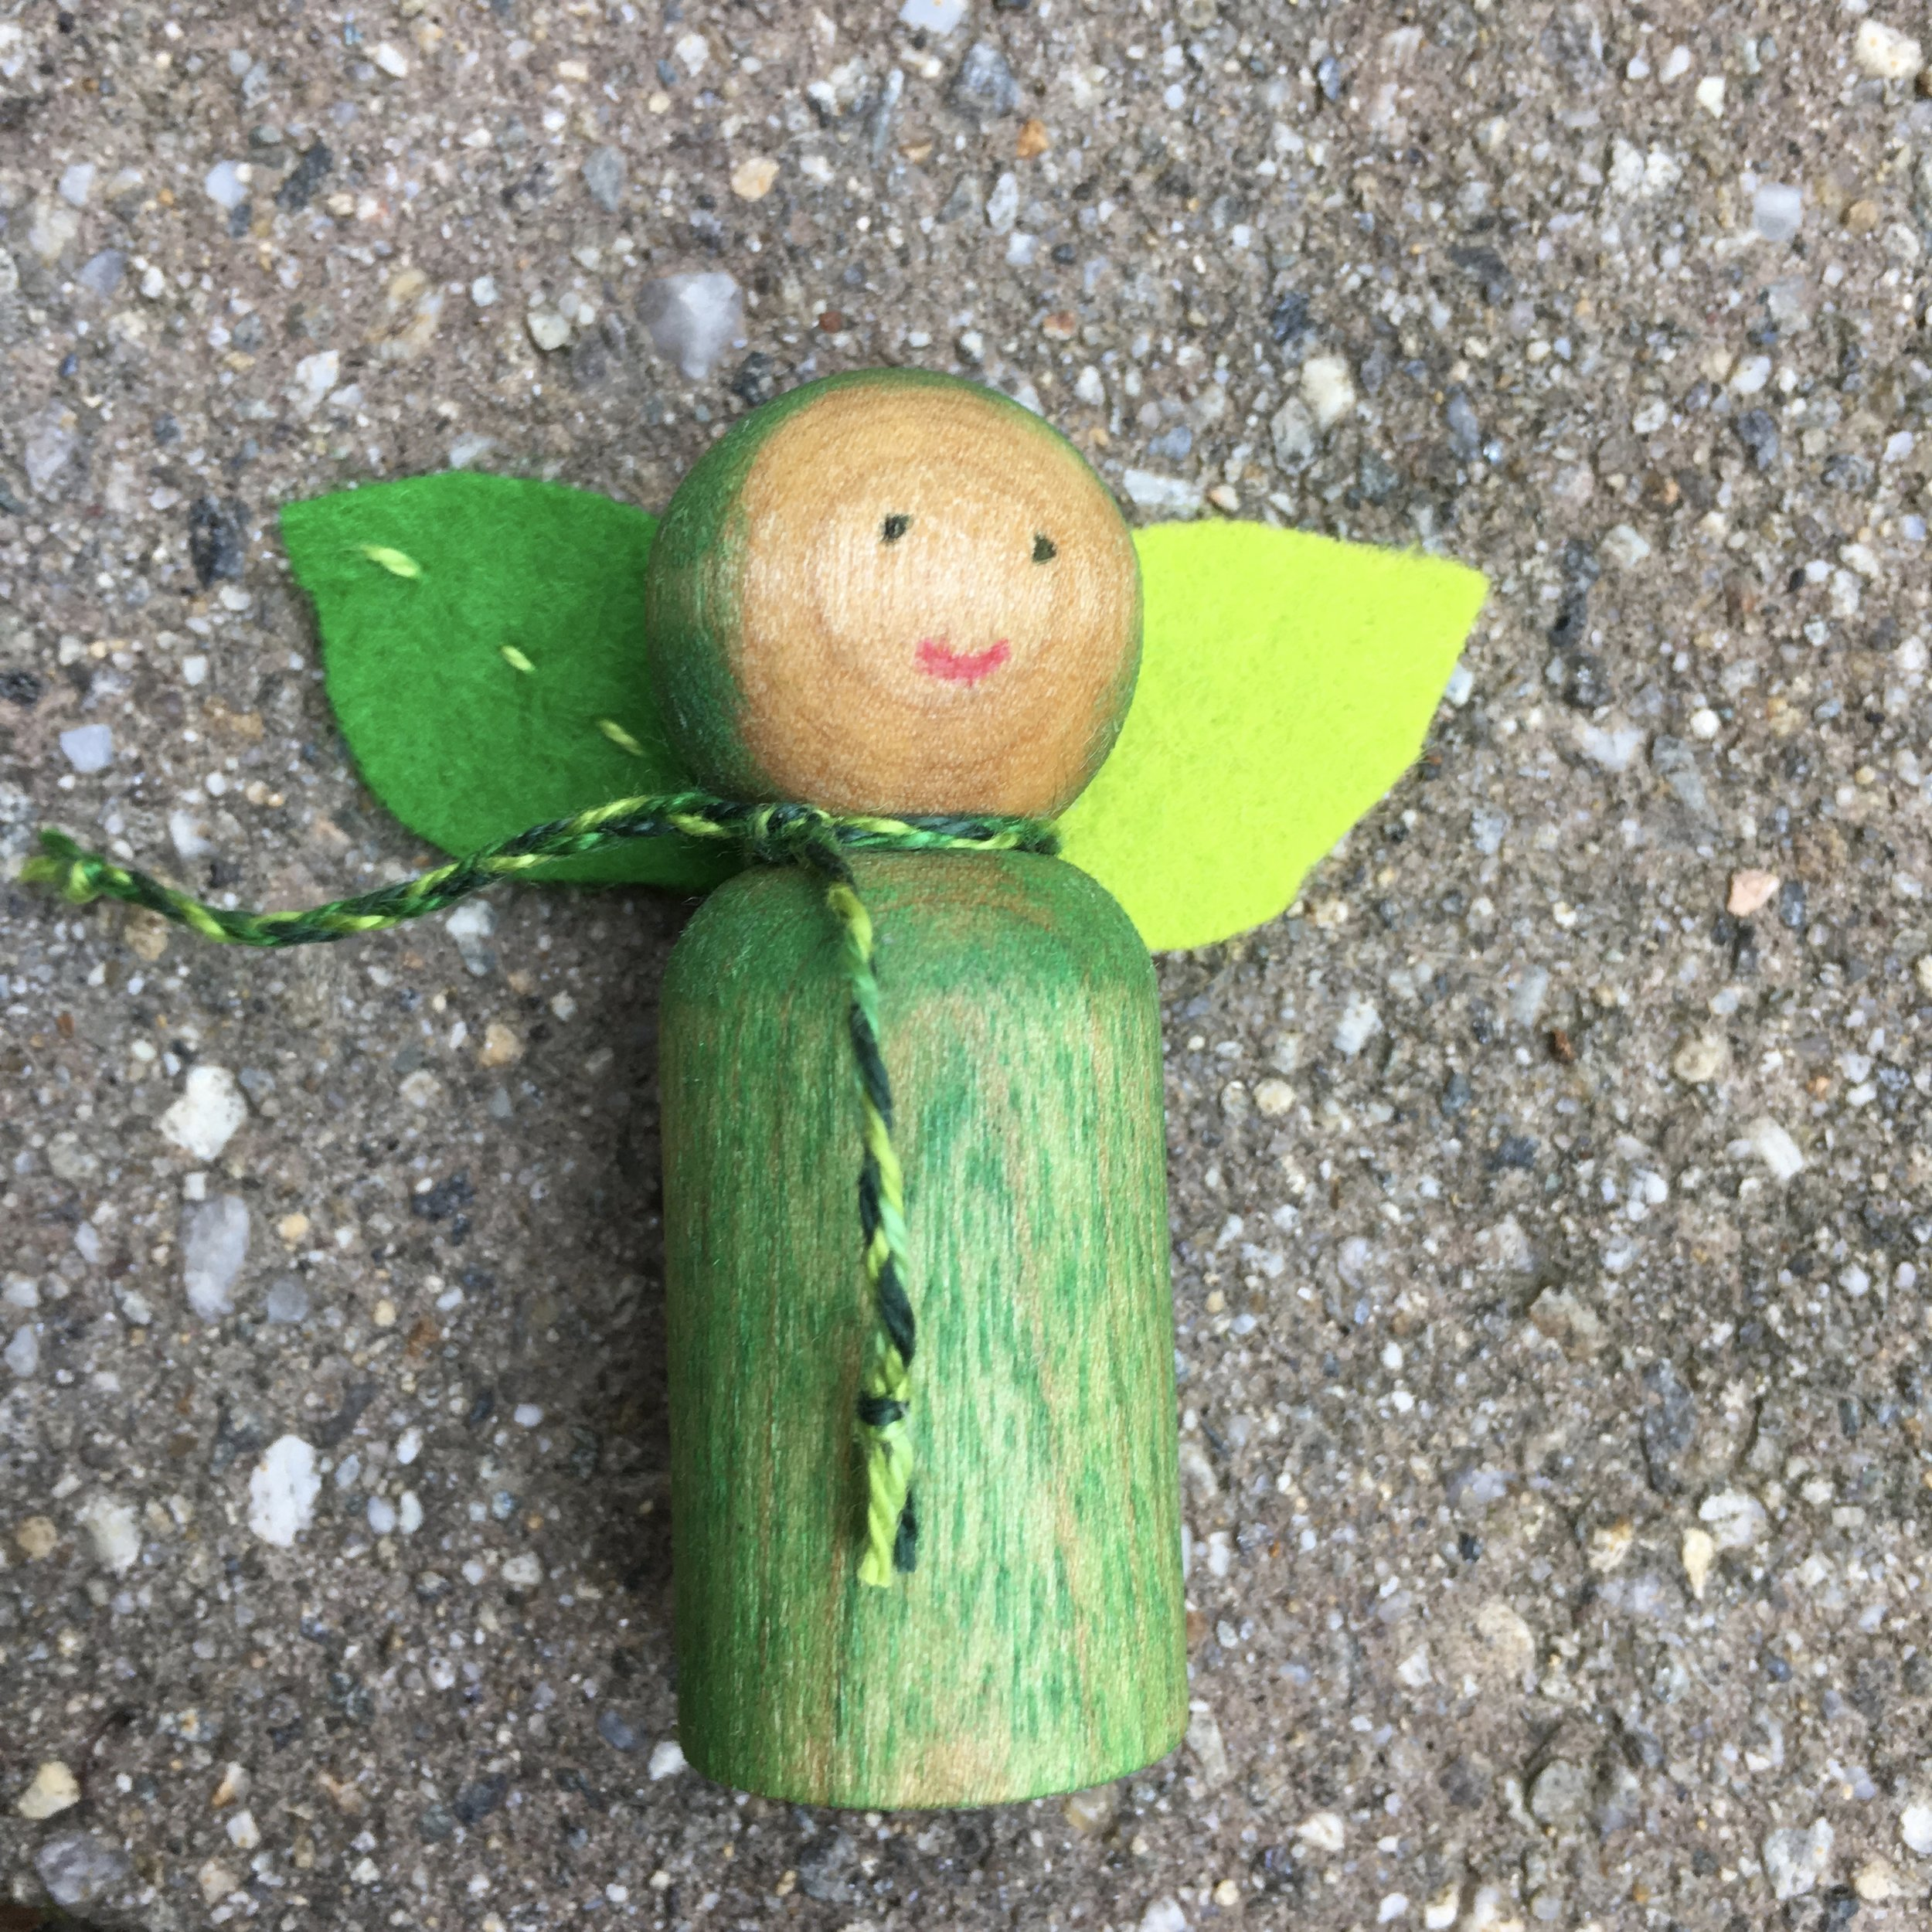 Completed Pea Sprout Peg Doll